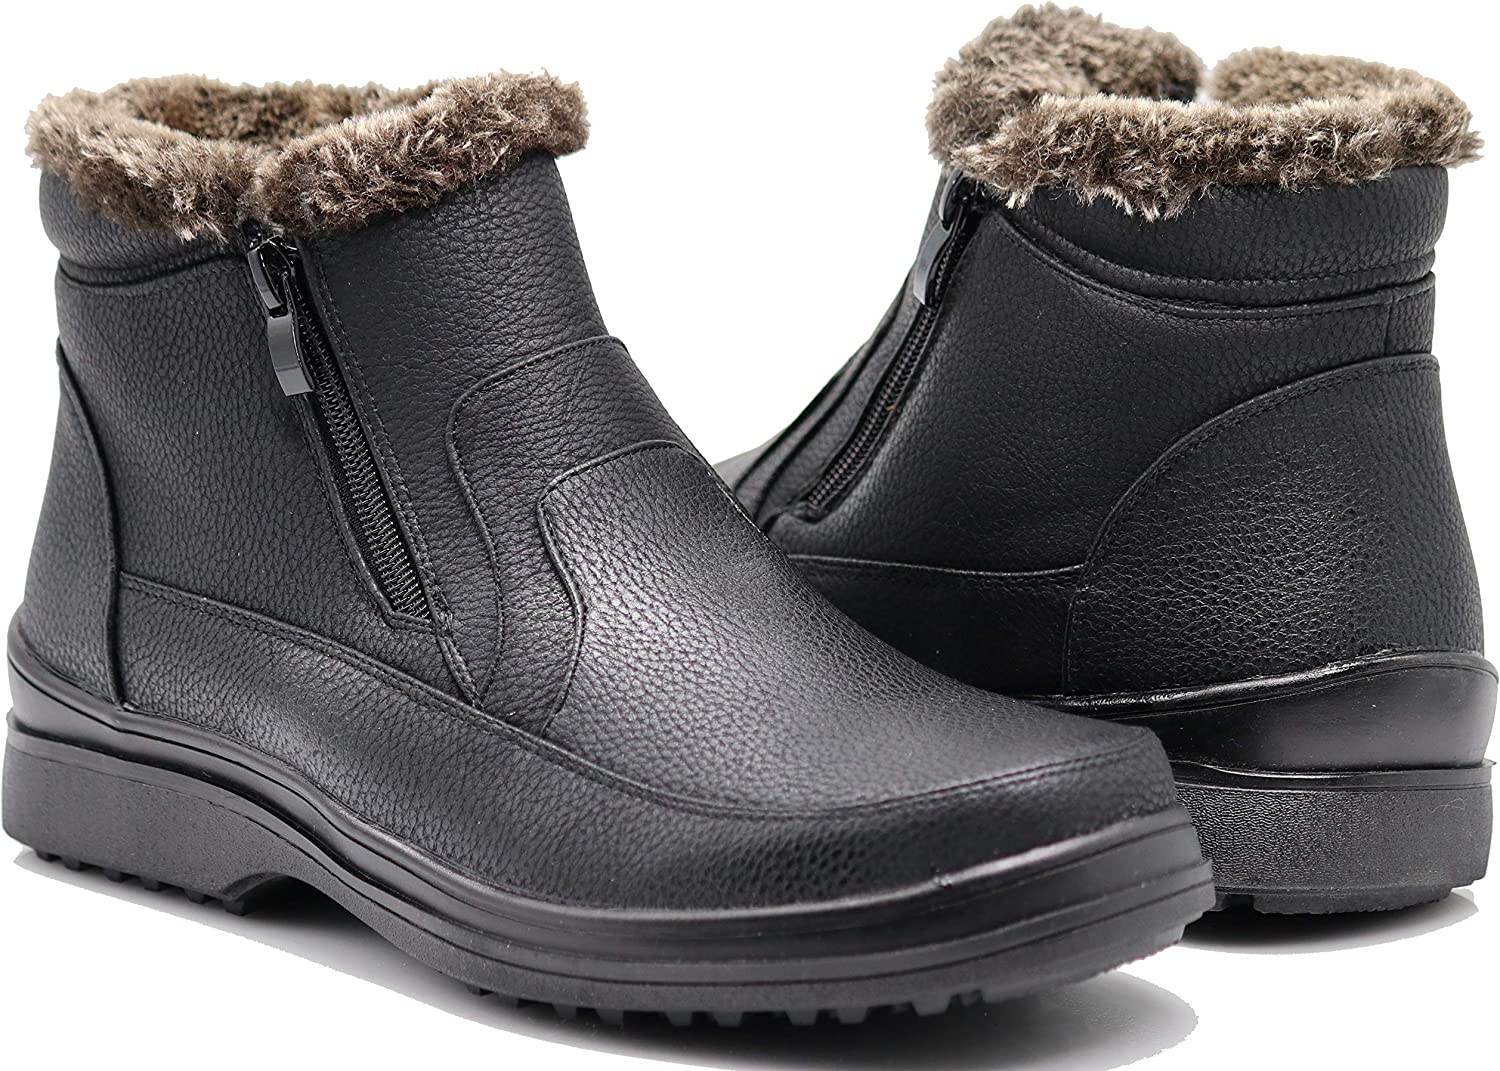 Enzo Romeo RU2N Men's Winter Cold Weather Snow Boots with Fur Fleece Lining Slip On shoes Black